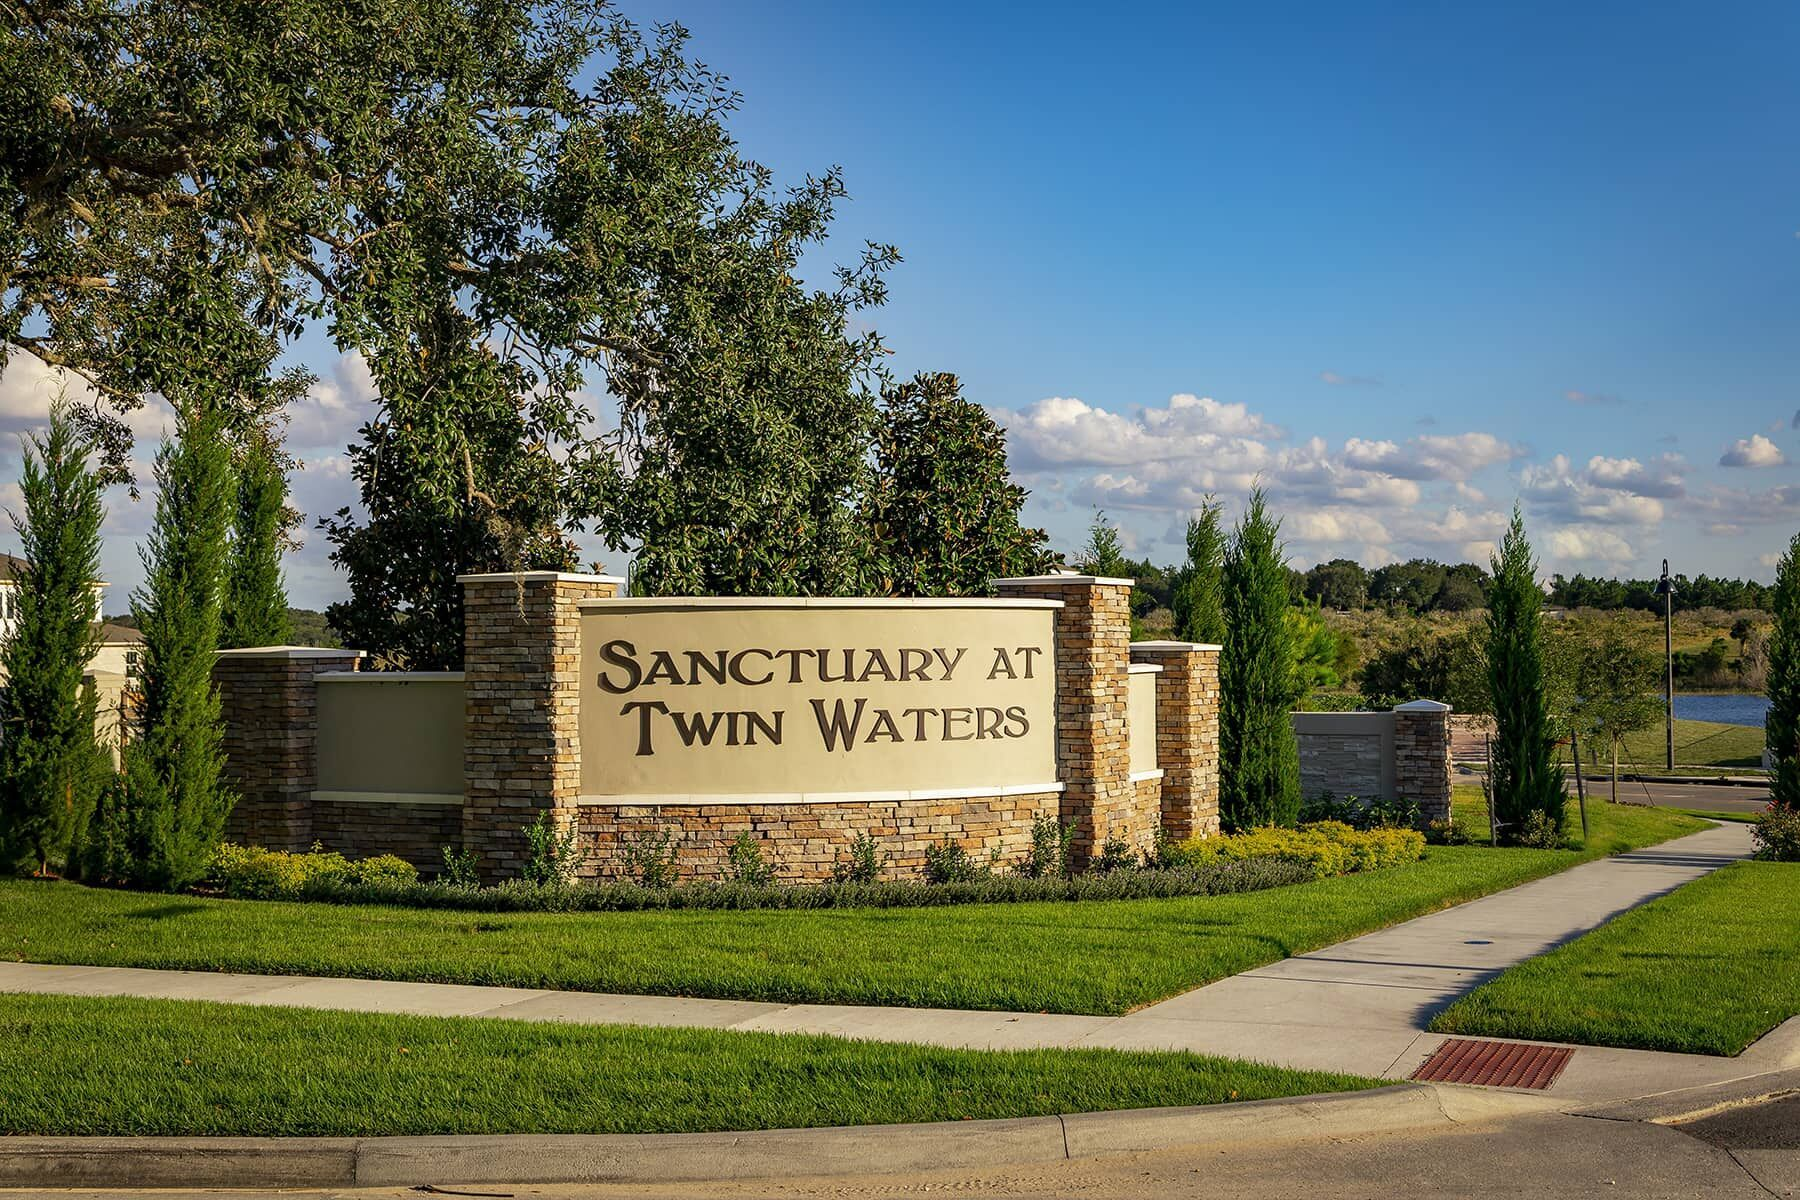 Sanctuary at Twin Waters Entrance